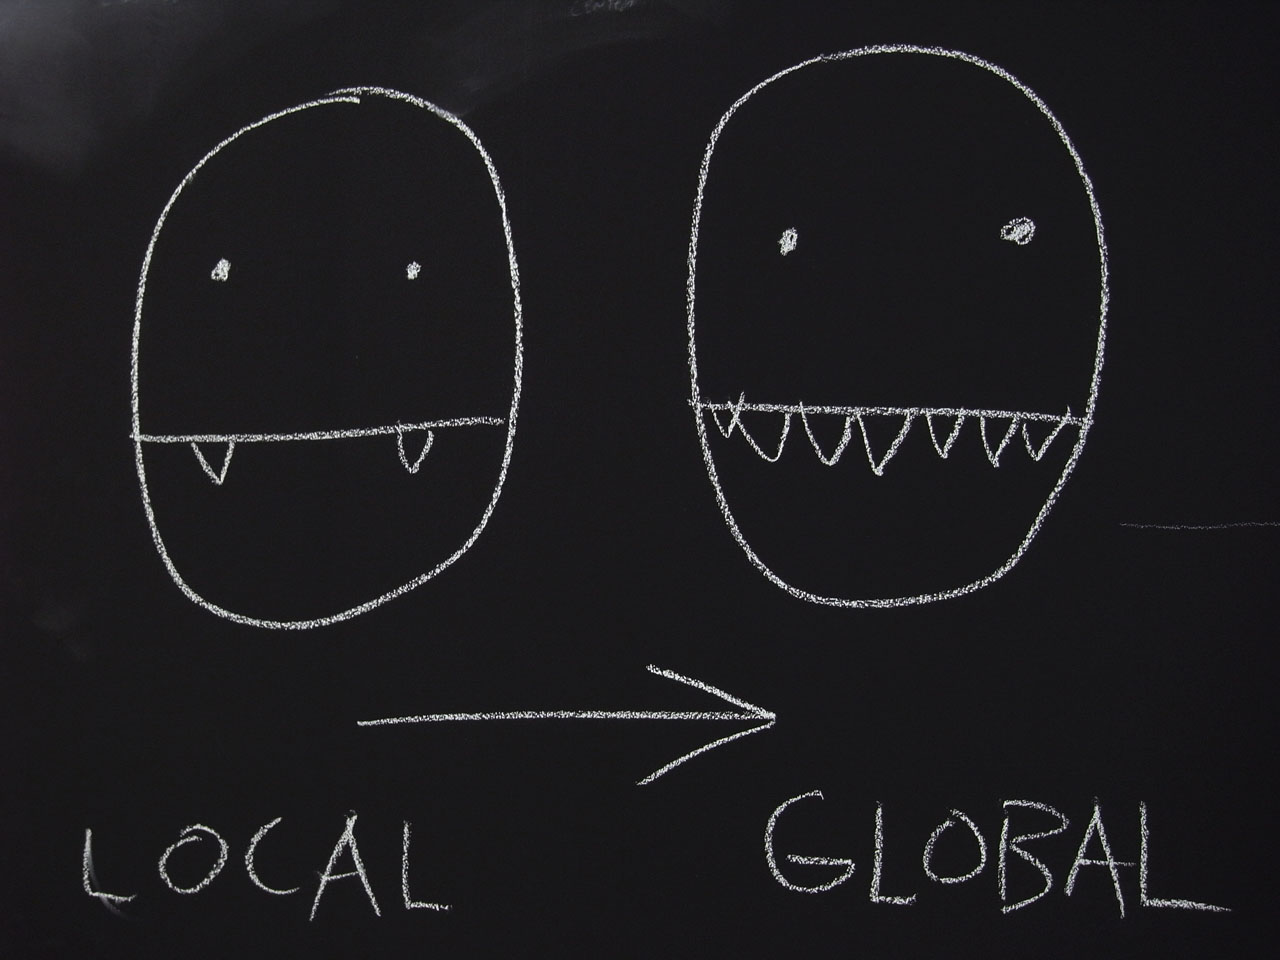 local-global